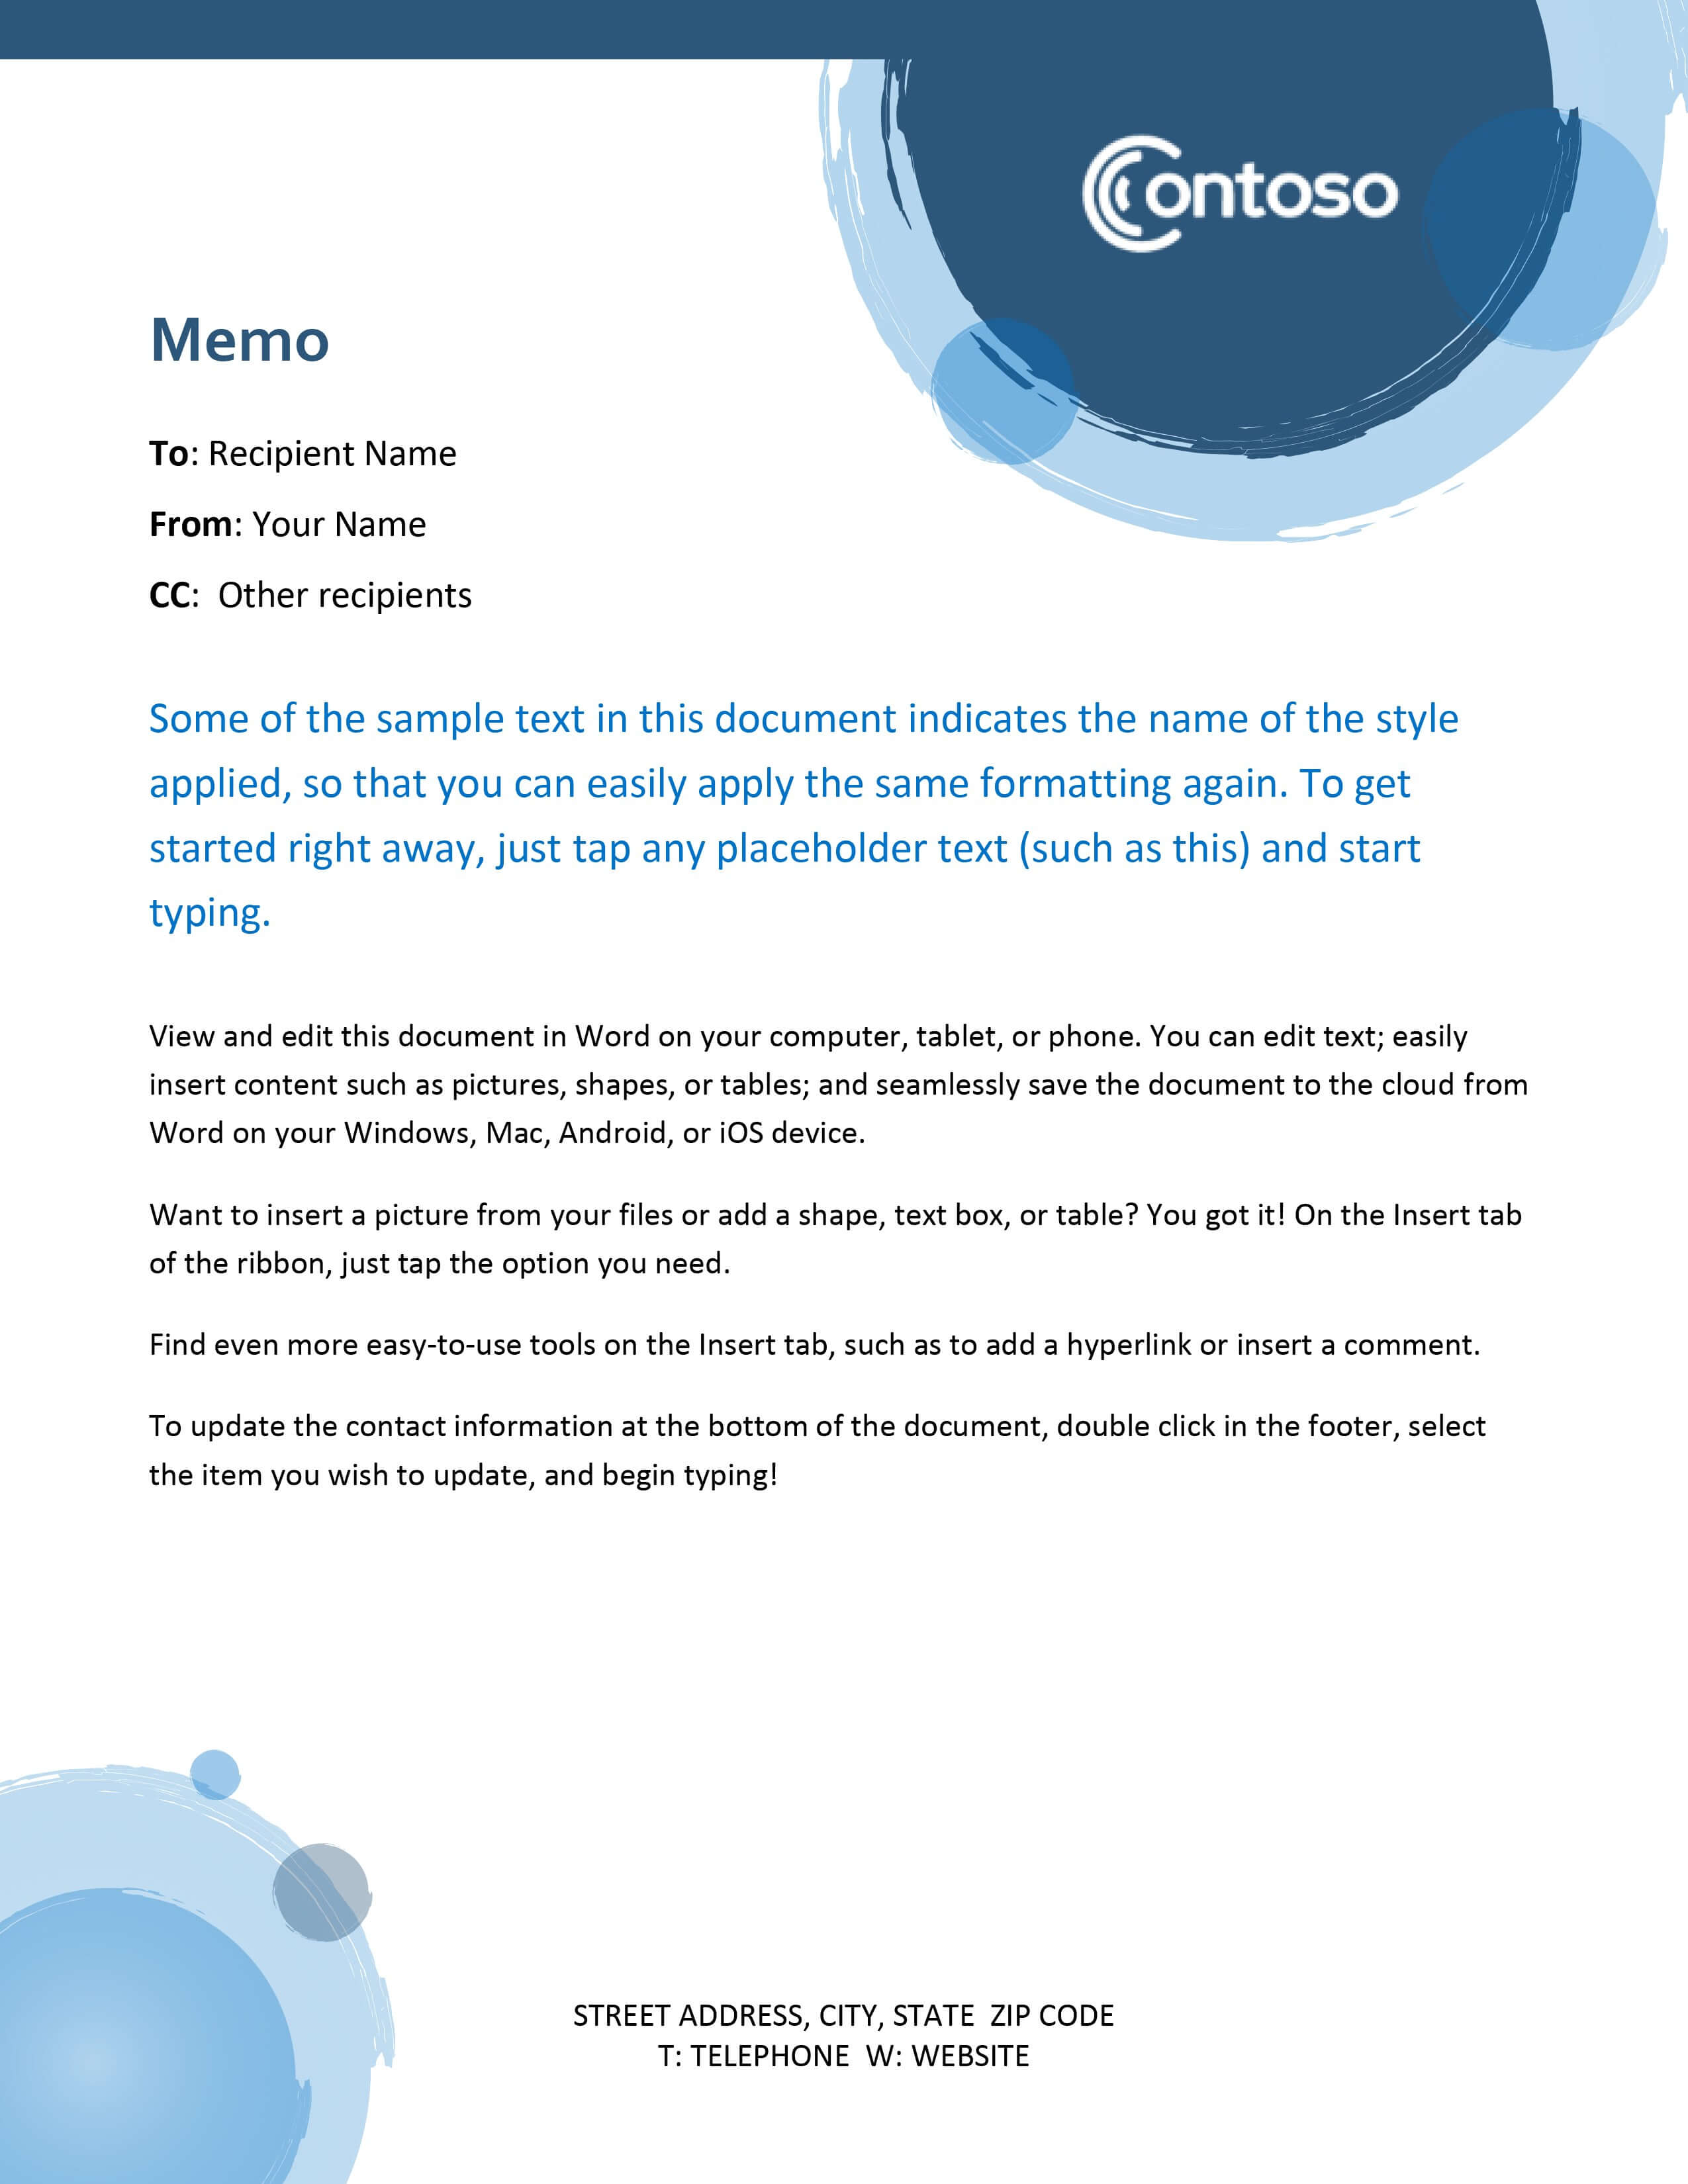 Memos - Office Intended For Memo Template Word 2013